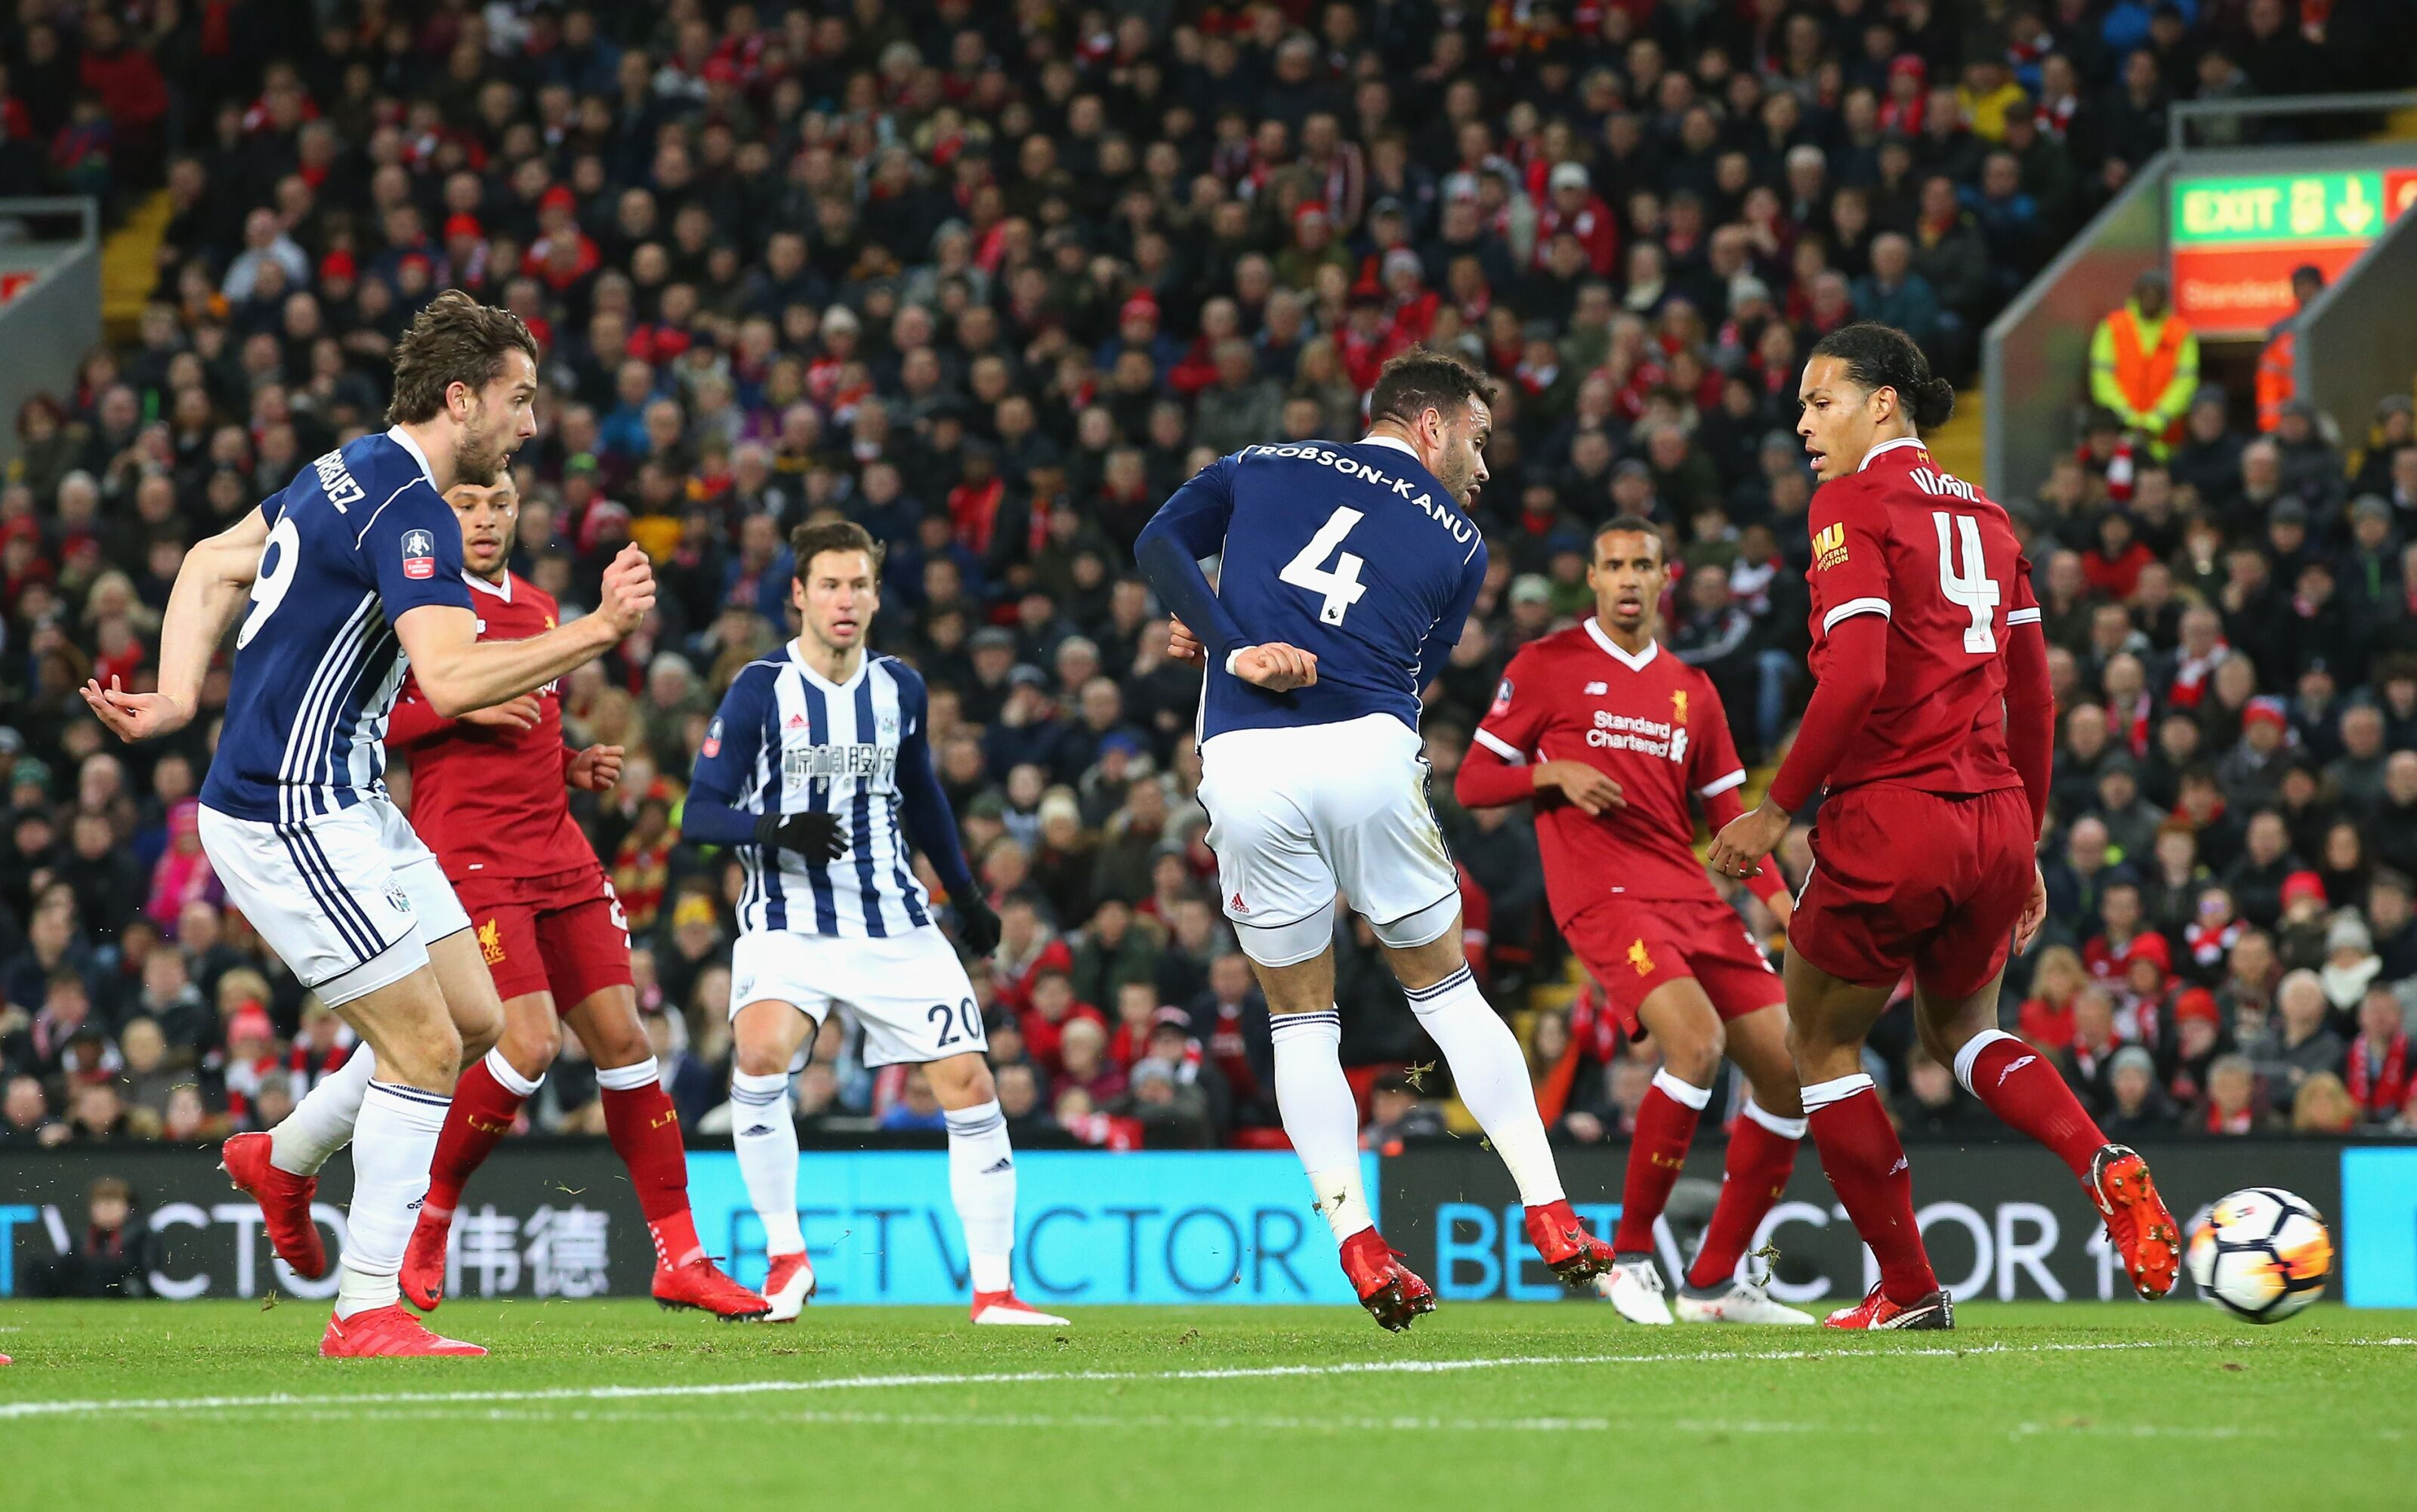 911104144-liverpool-v-west-bromwich-albion-the-emirates-fa-cup-fourth-round.jpg